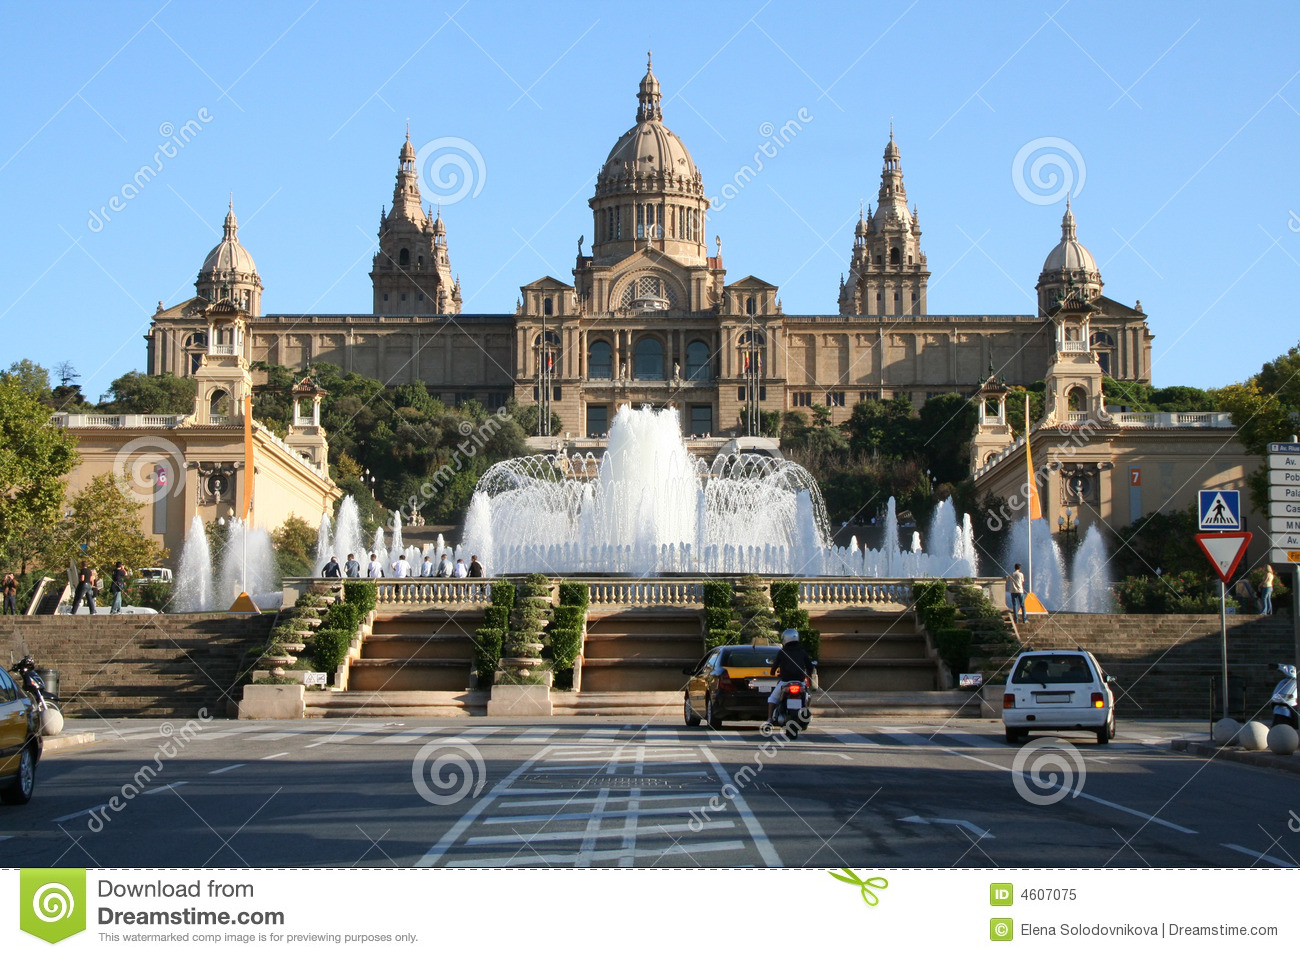 National museum MNAC and Fountain in Barcelona